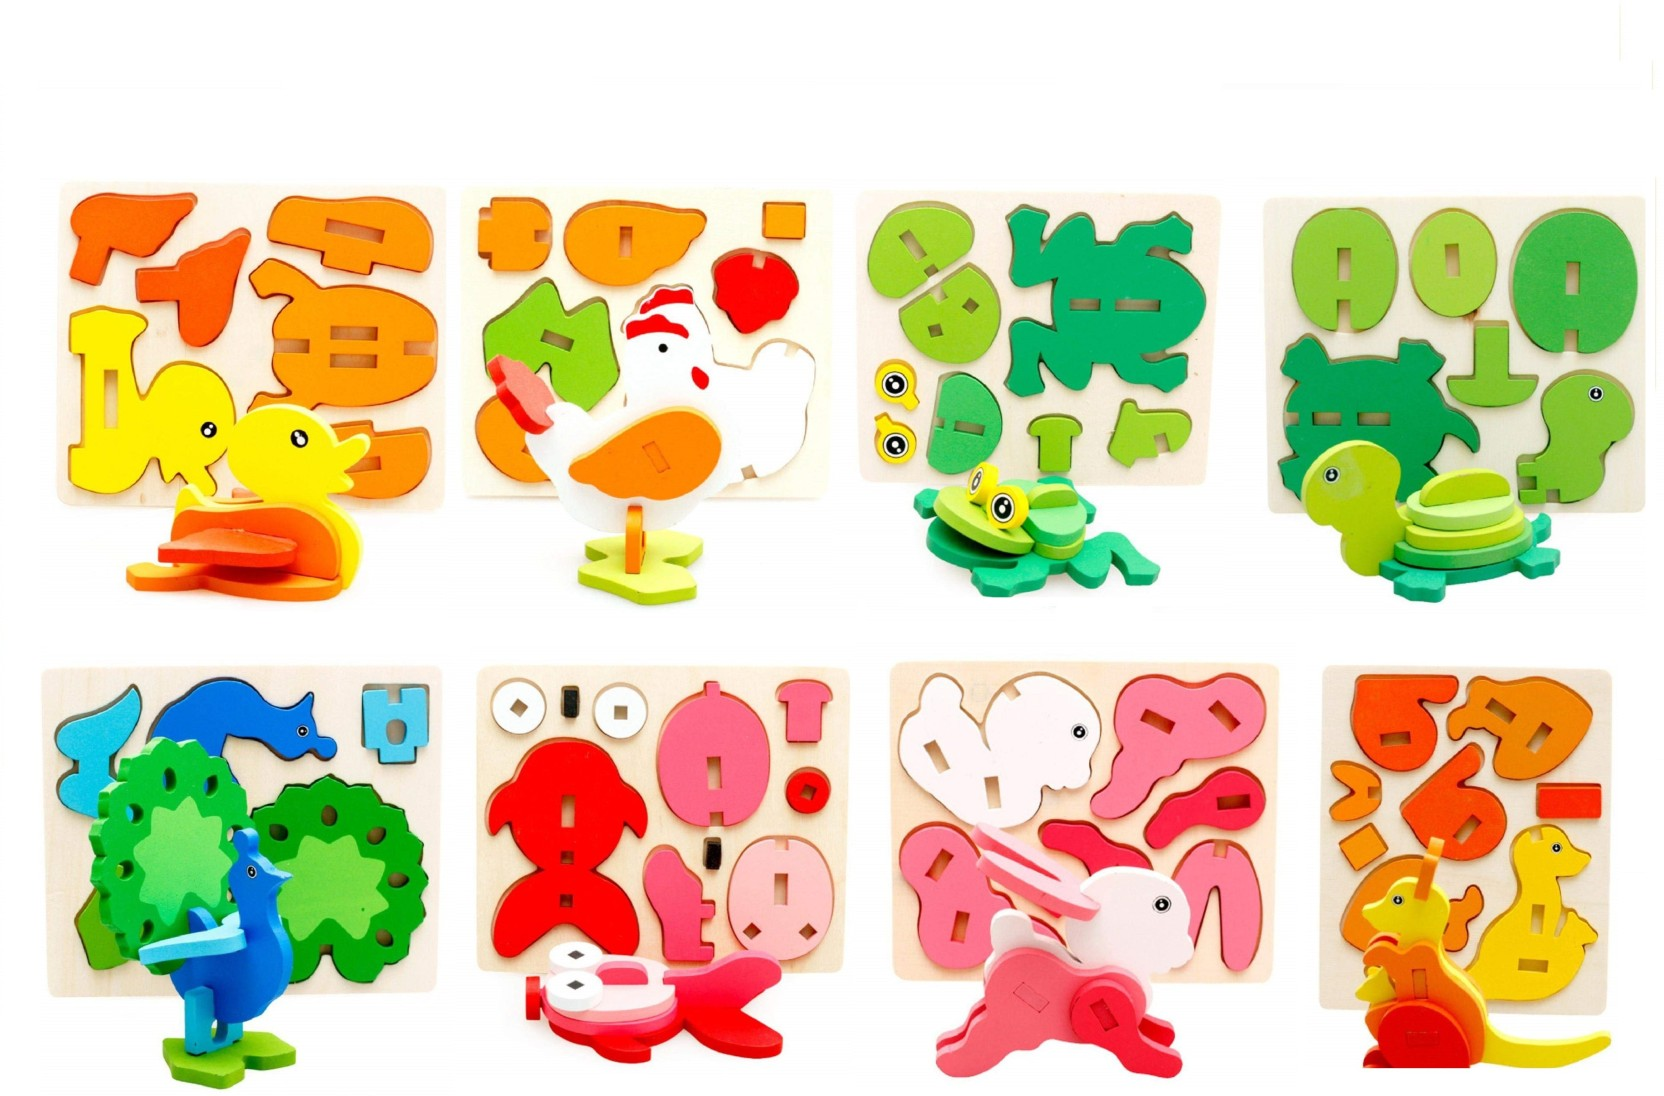 FLICK IN Early Age Montessori 3D Wooden Puzzles For Kids